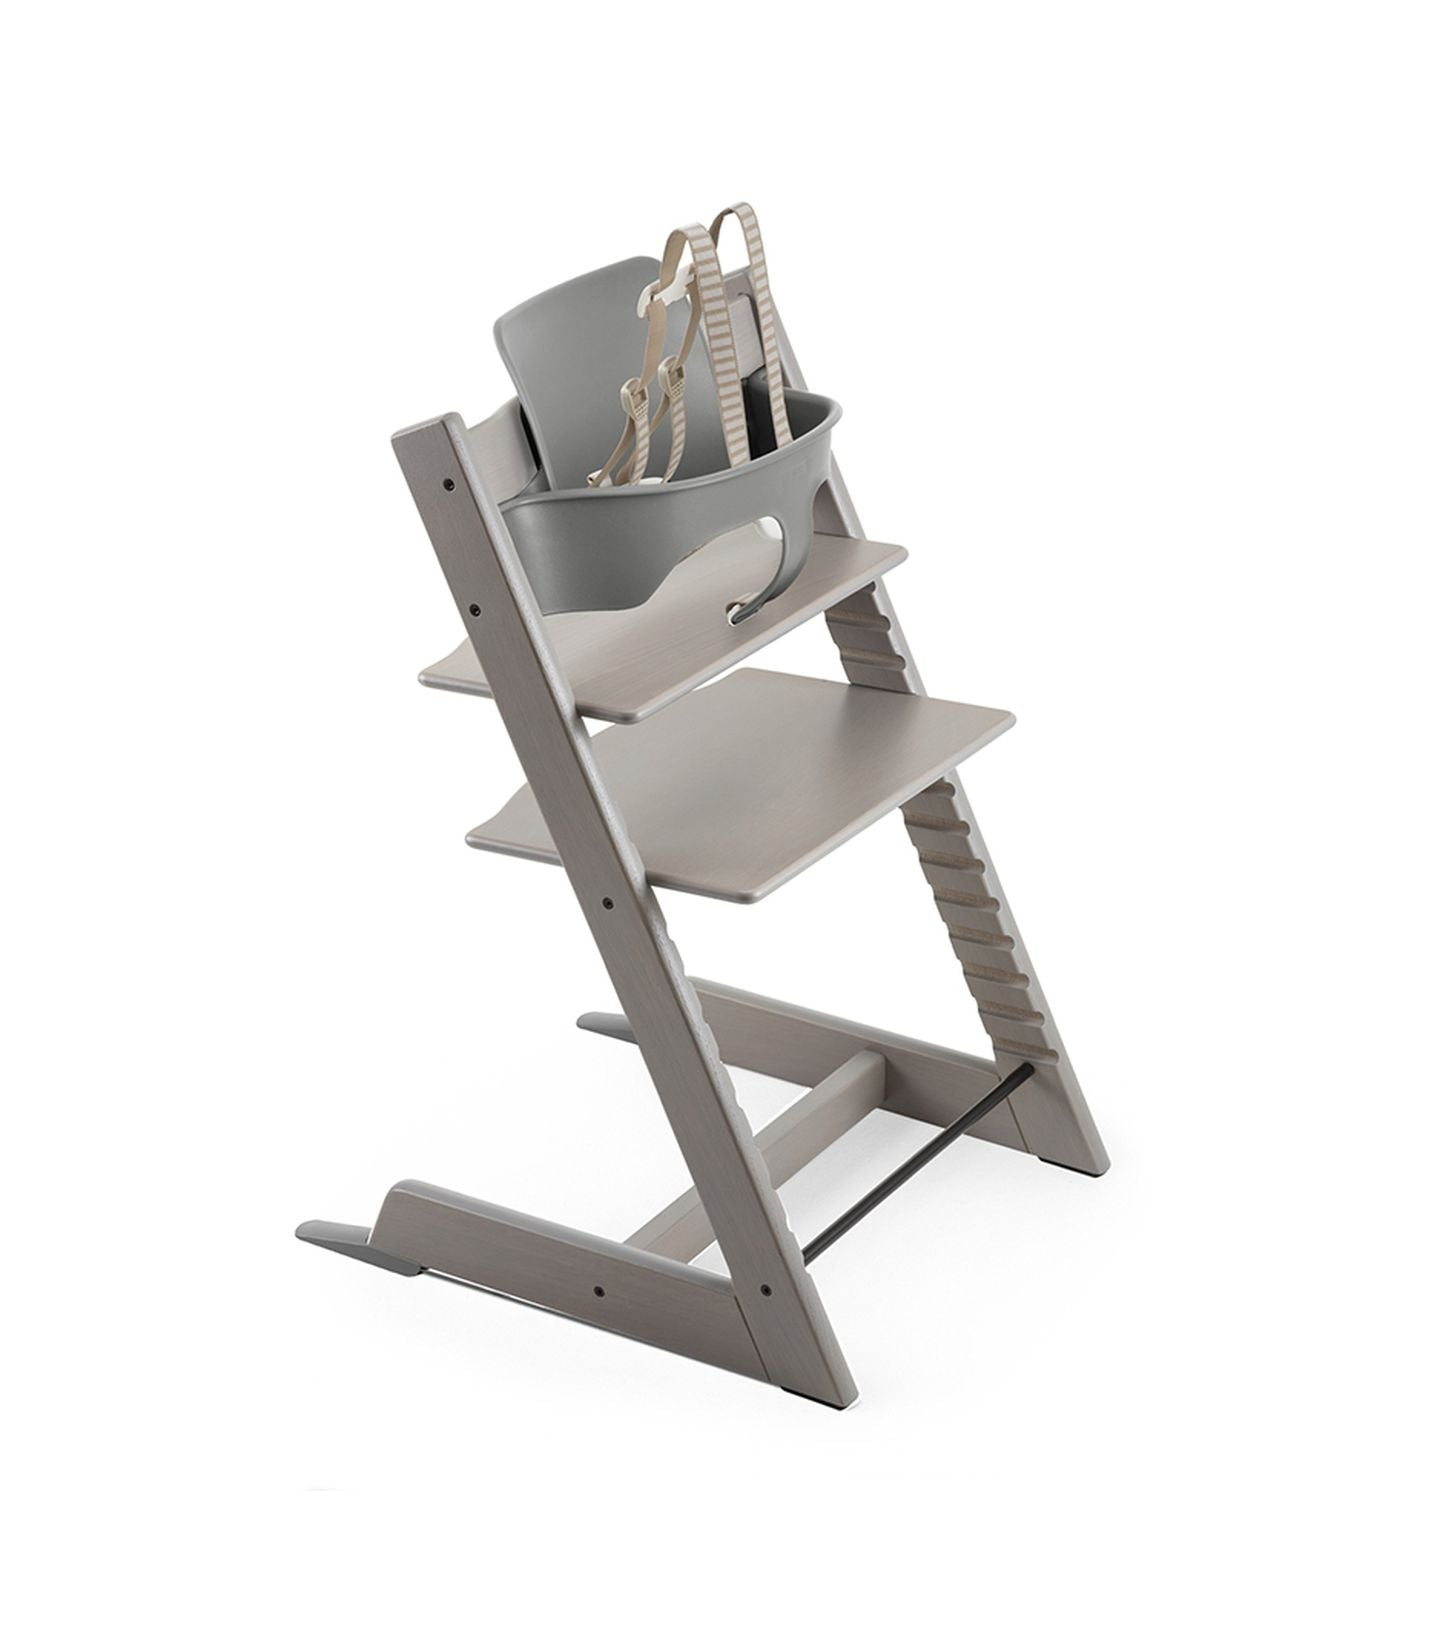 Stokke Tripp Trapp Oak Wooden High Chair